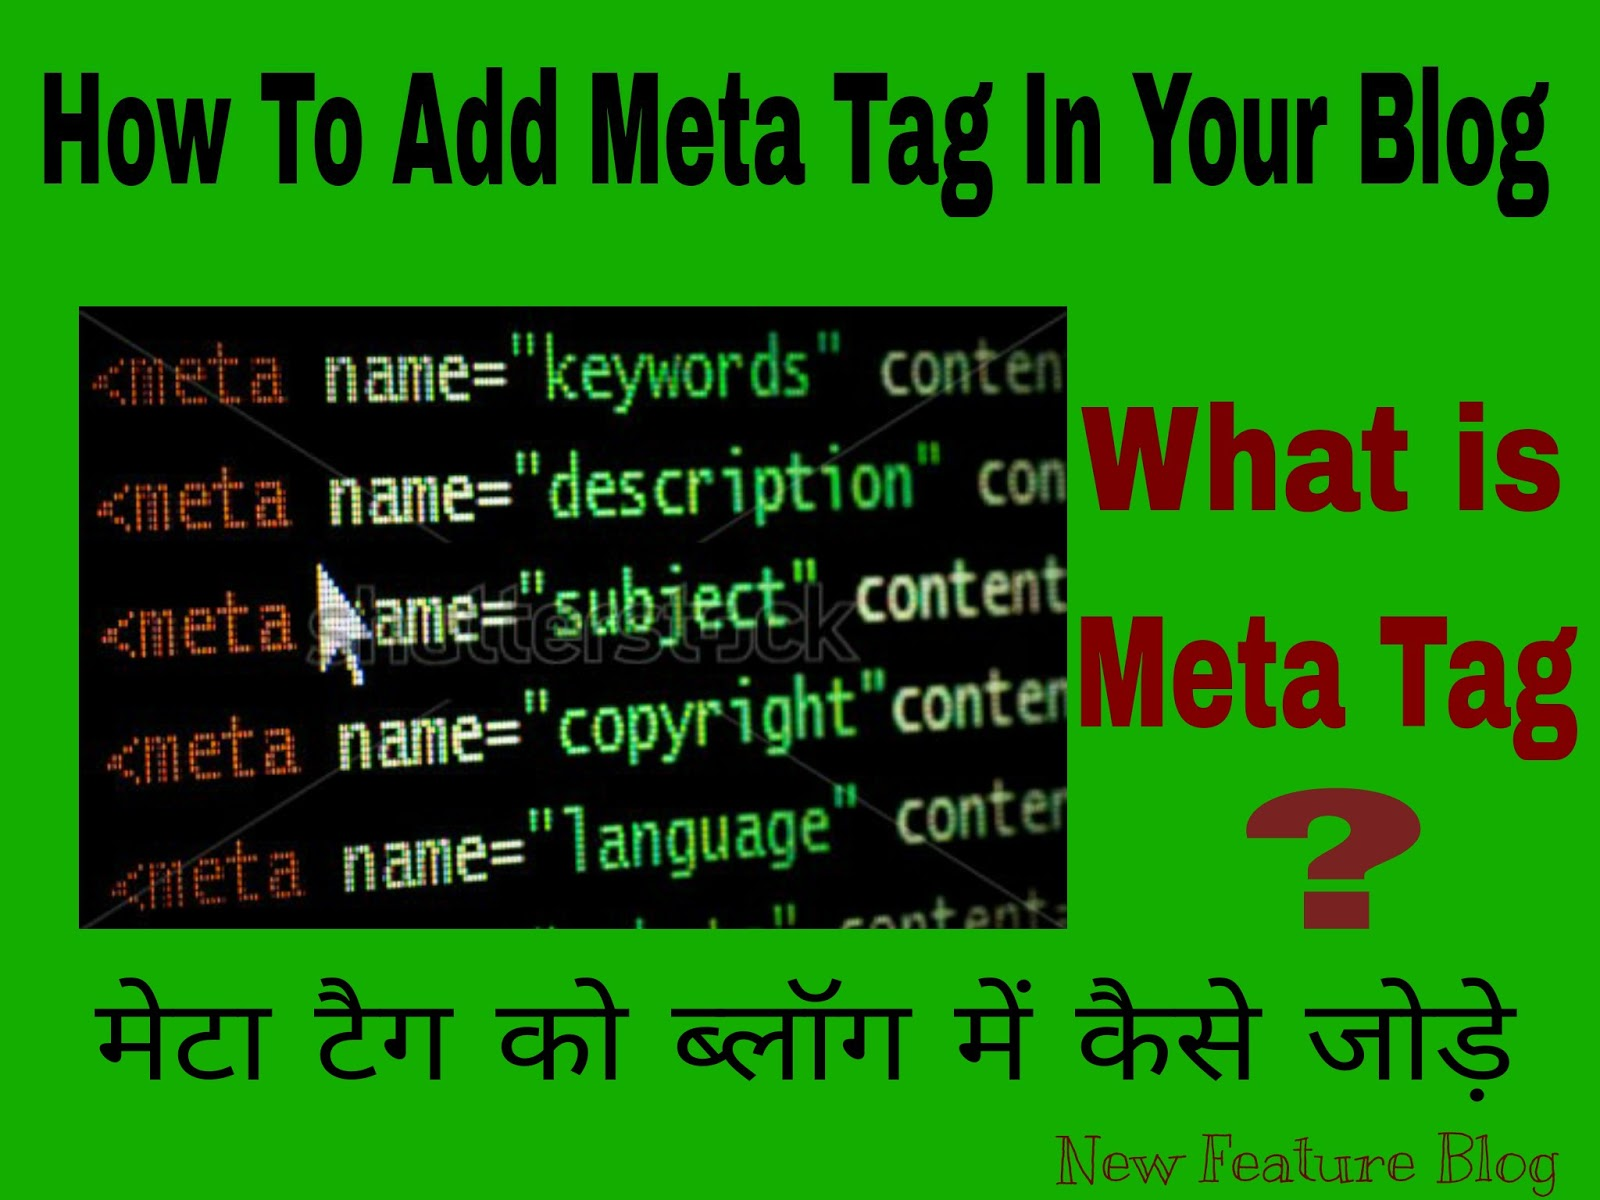 meta-tag-ko-blog-me-add-kare